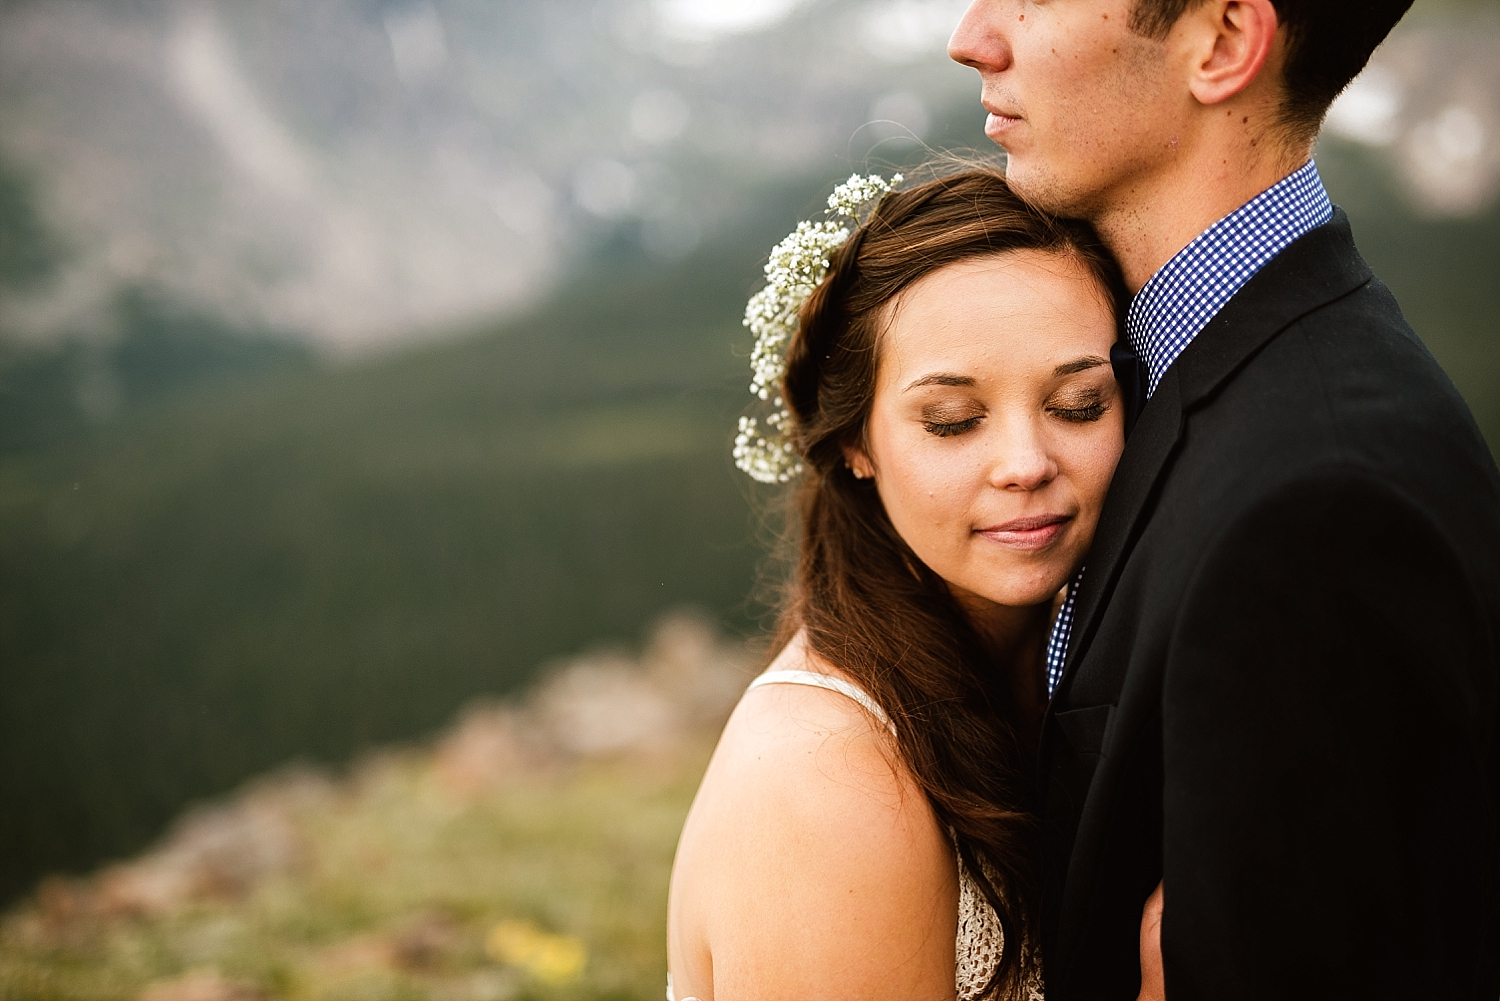 These intimate wedding photos from Jessica and Edward's mountain elopement can't be beaten! Such a gorgeous wedding location in Estes Park, Colorado! | RMNP wedding photos by adventure wedding photographer, Maddie Mae.